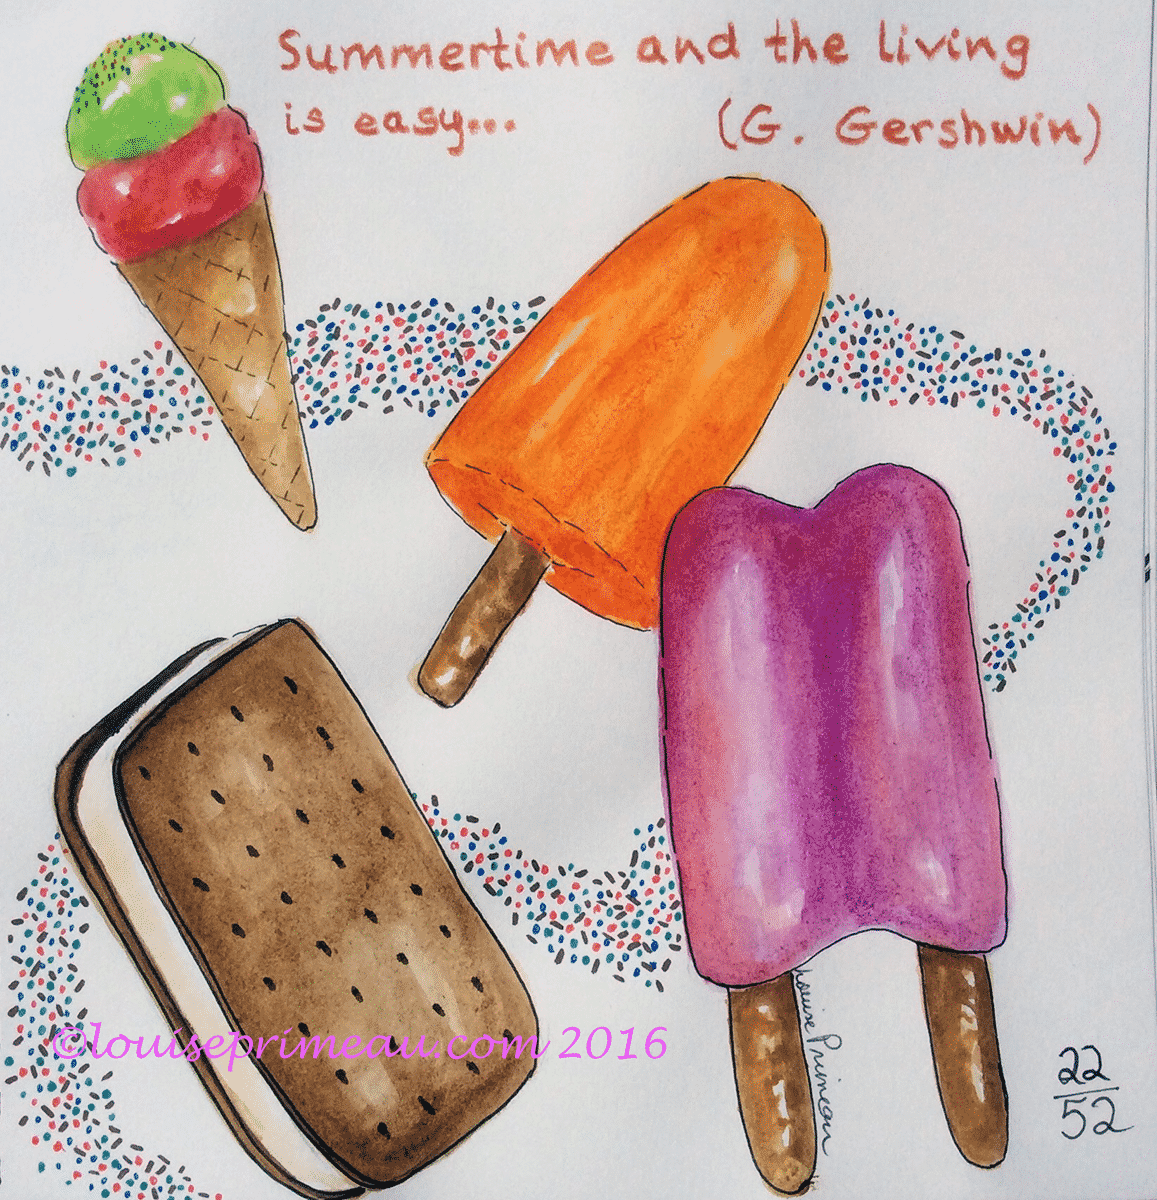 illustration of popsicles and ice cream bars